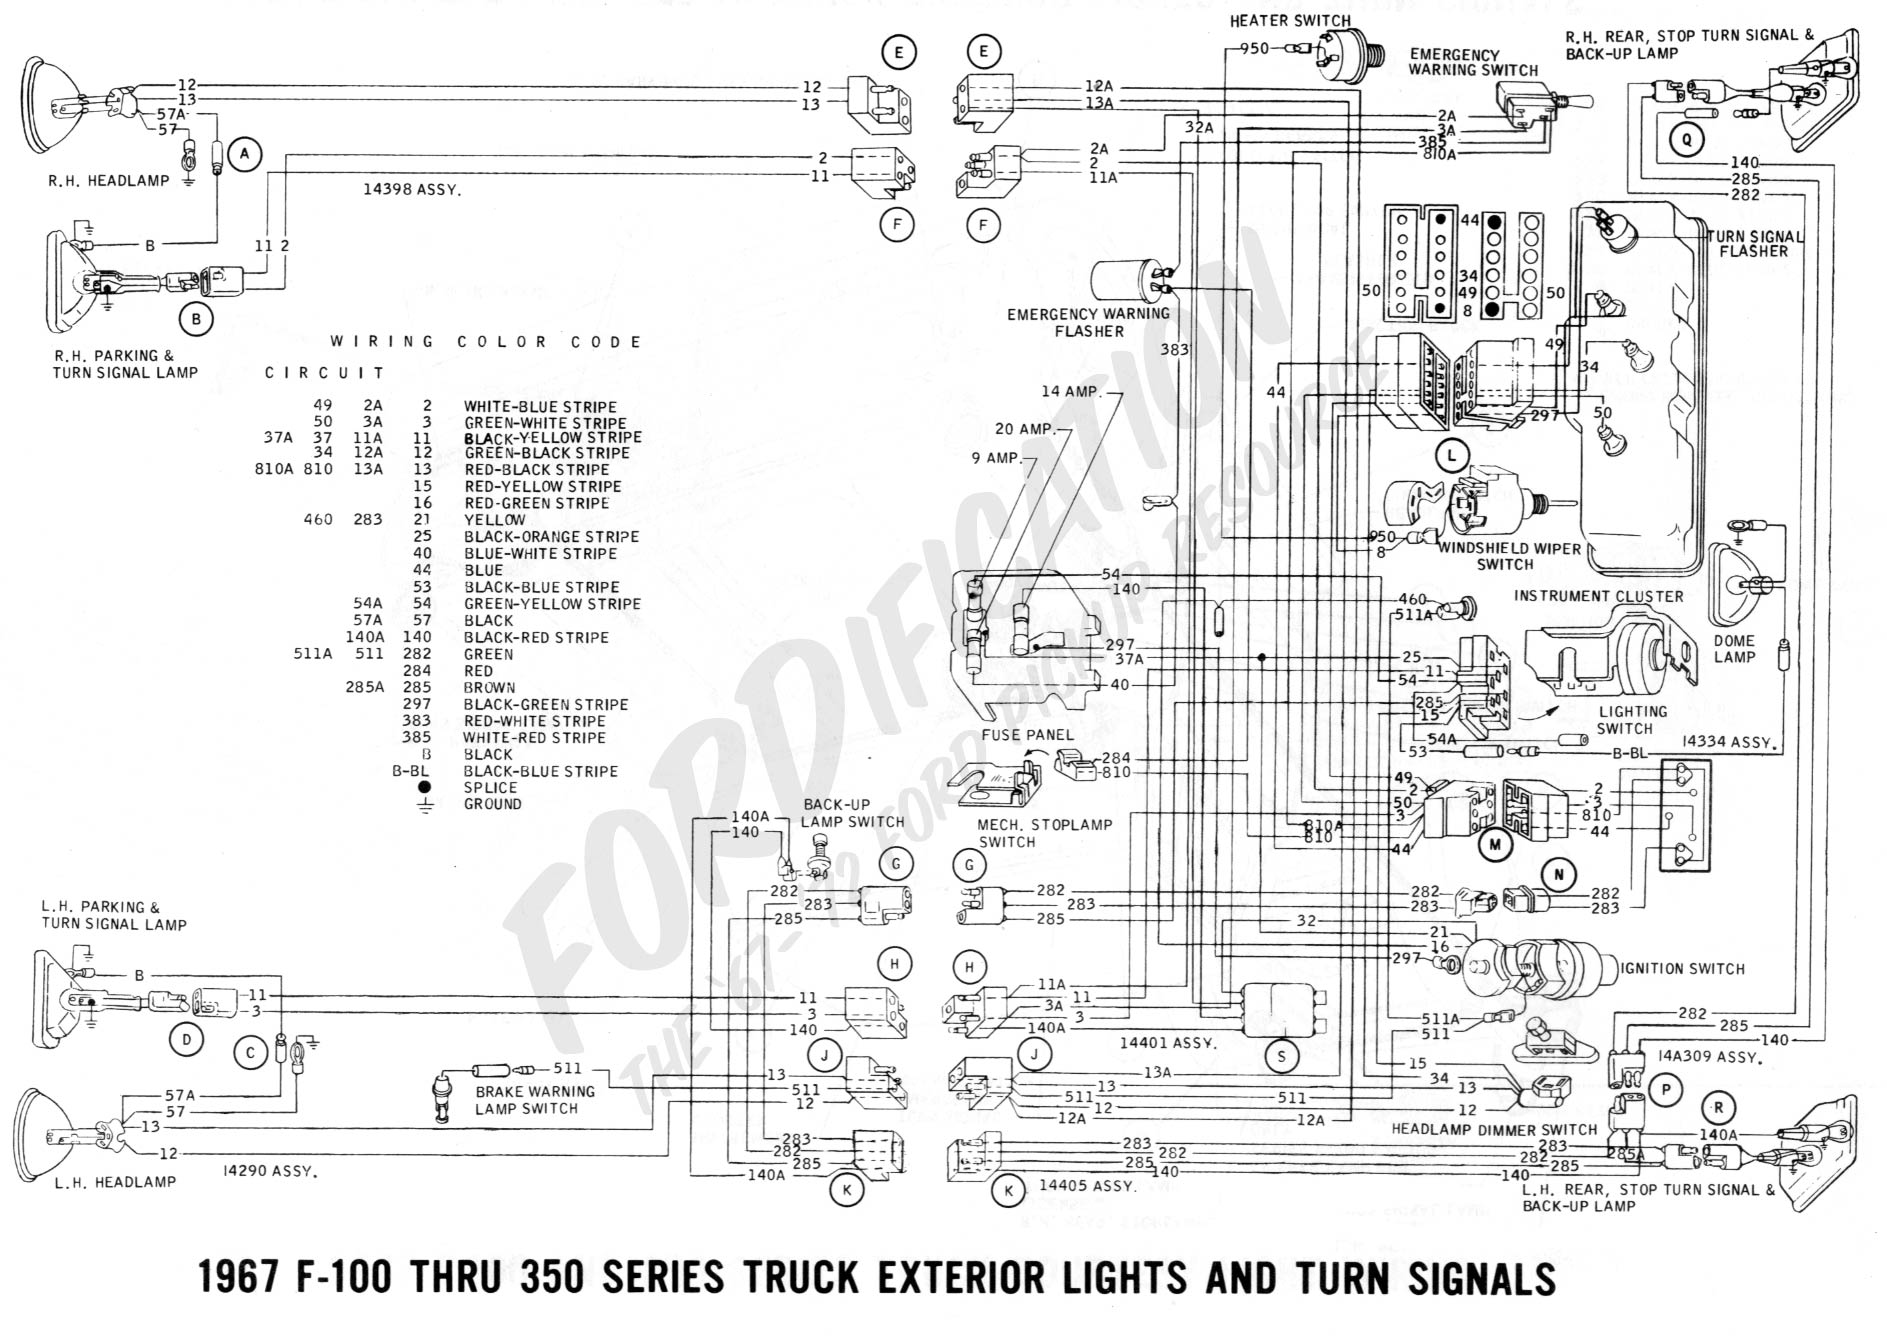 [SCHEMATICS_4JK]  65BE16 1997 Ford F 250 Diesel Fuse Box Diagram | Wiring Library | 97 Ranger Projector Headlight Wiring Diagram |  | Wiring Library